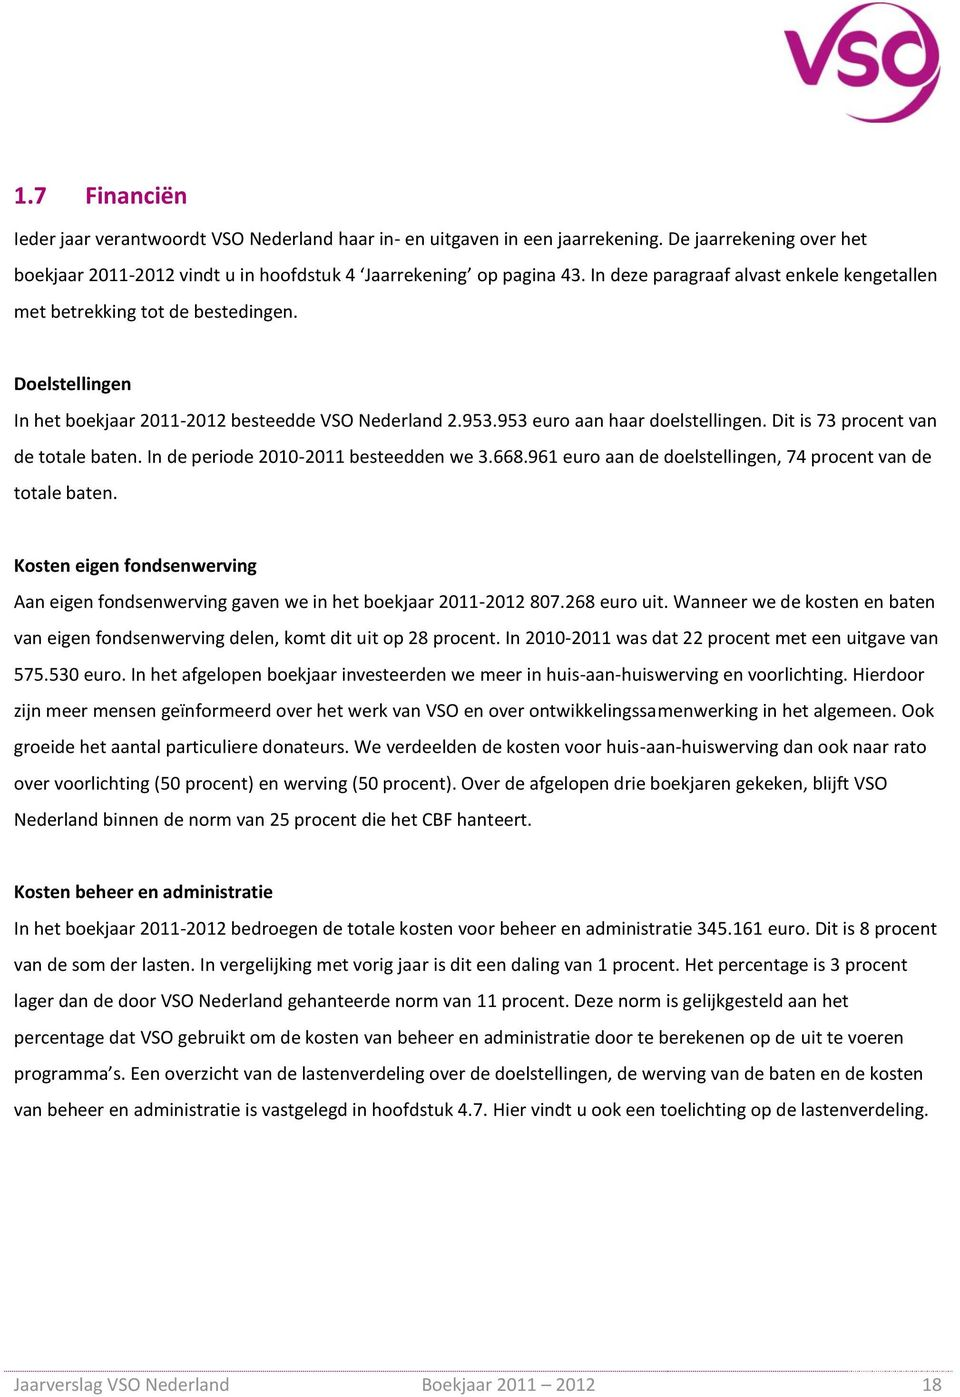 Dit is 73 procent van de totale baten. In de periode 2010-2011 besteedden we 3.668.961 euro aan de doelstellingen, 74 procent van de totale baten.